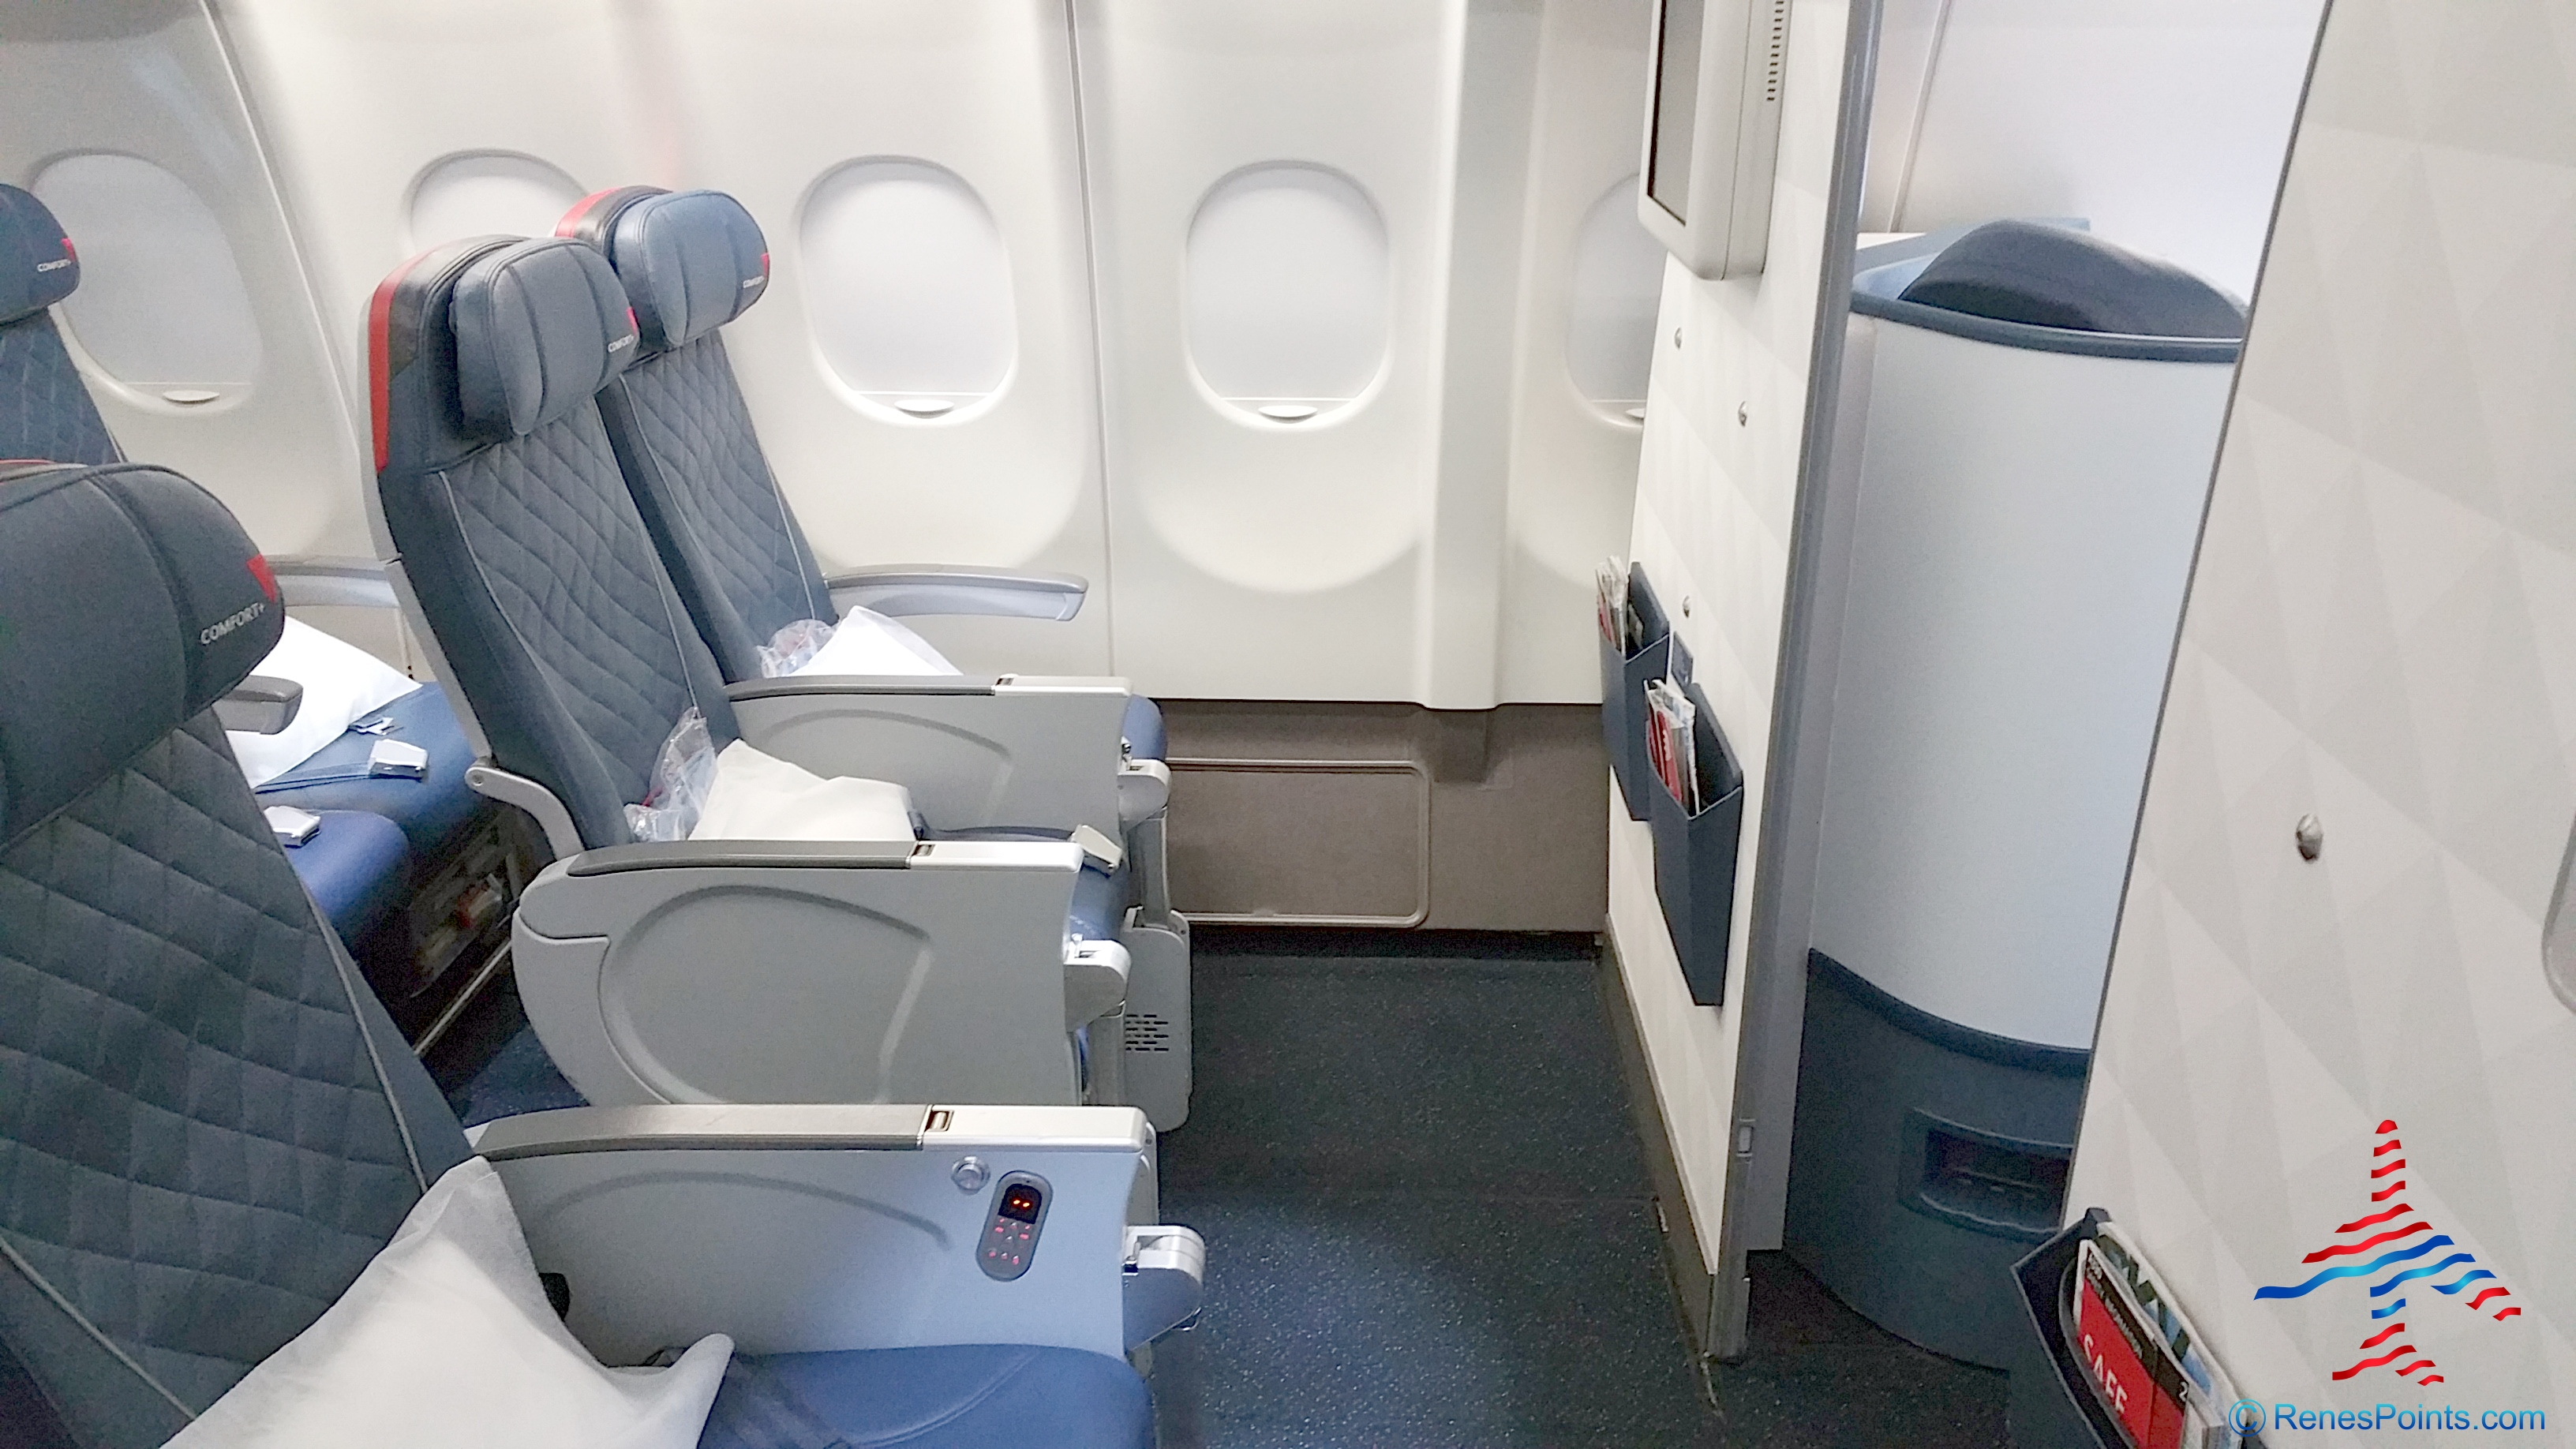 Delta Comfort Plus Review The Travel Bite - Modern Home